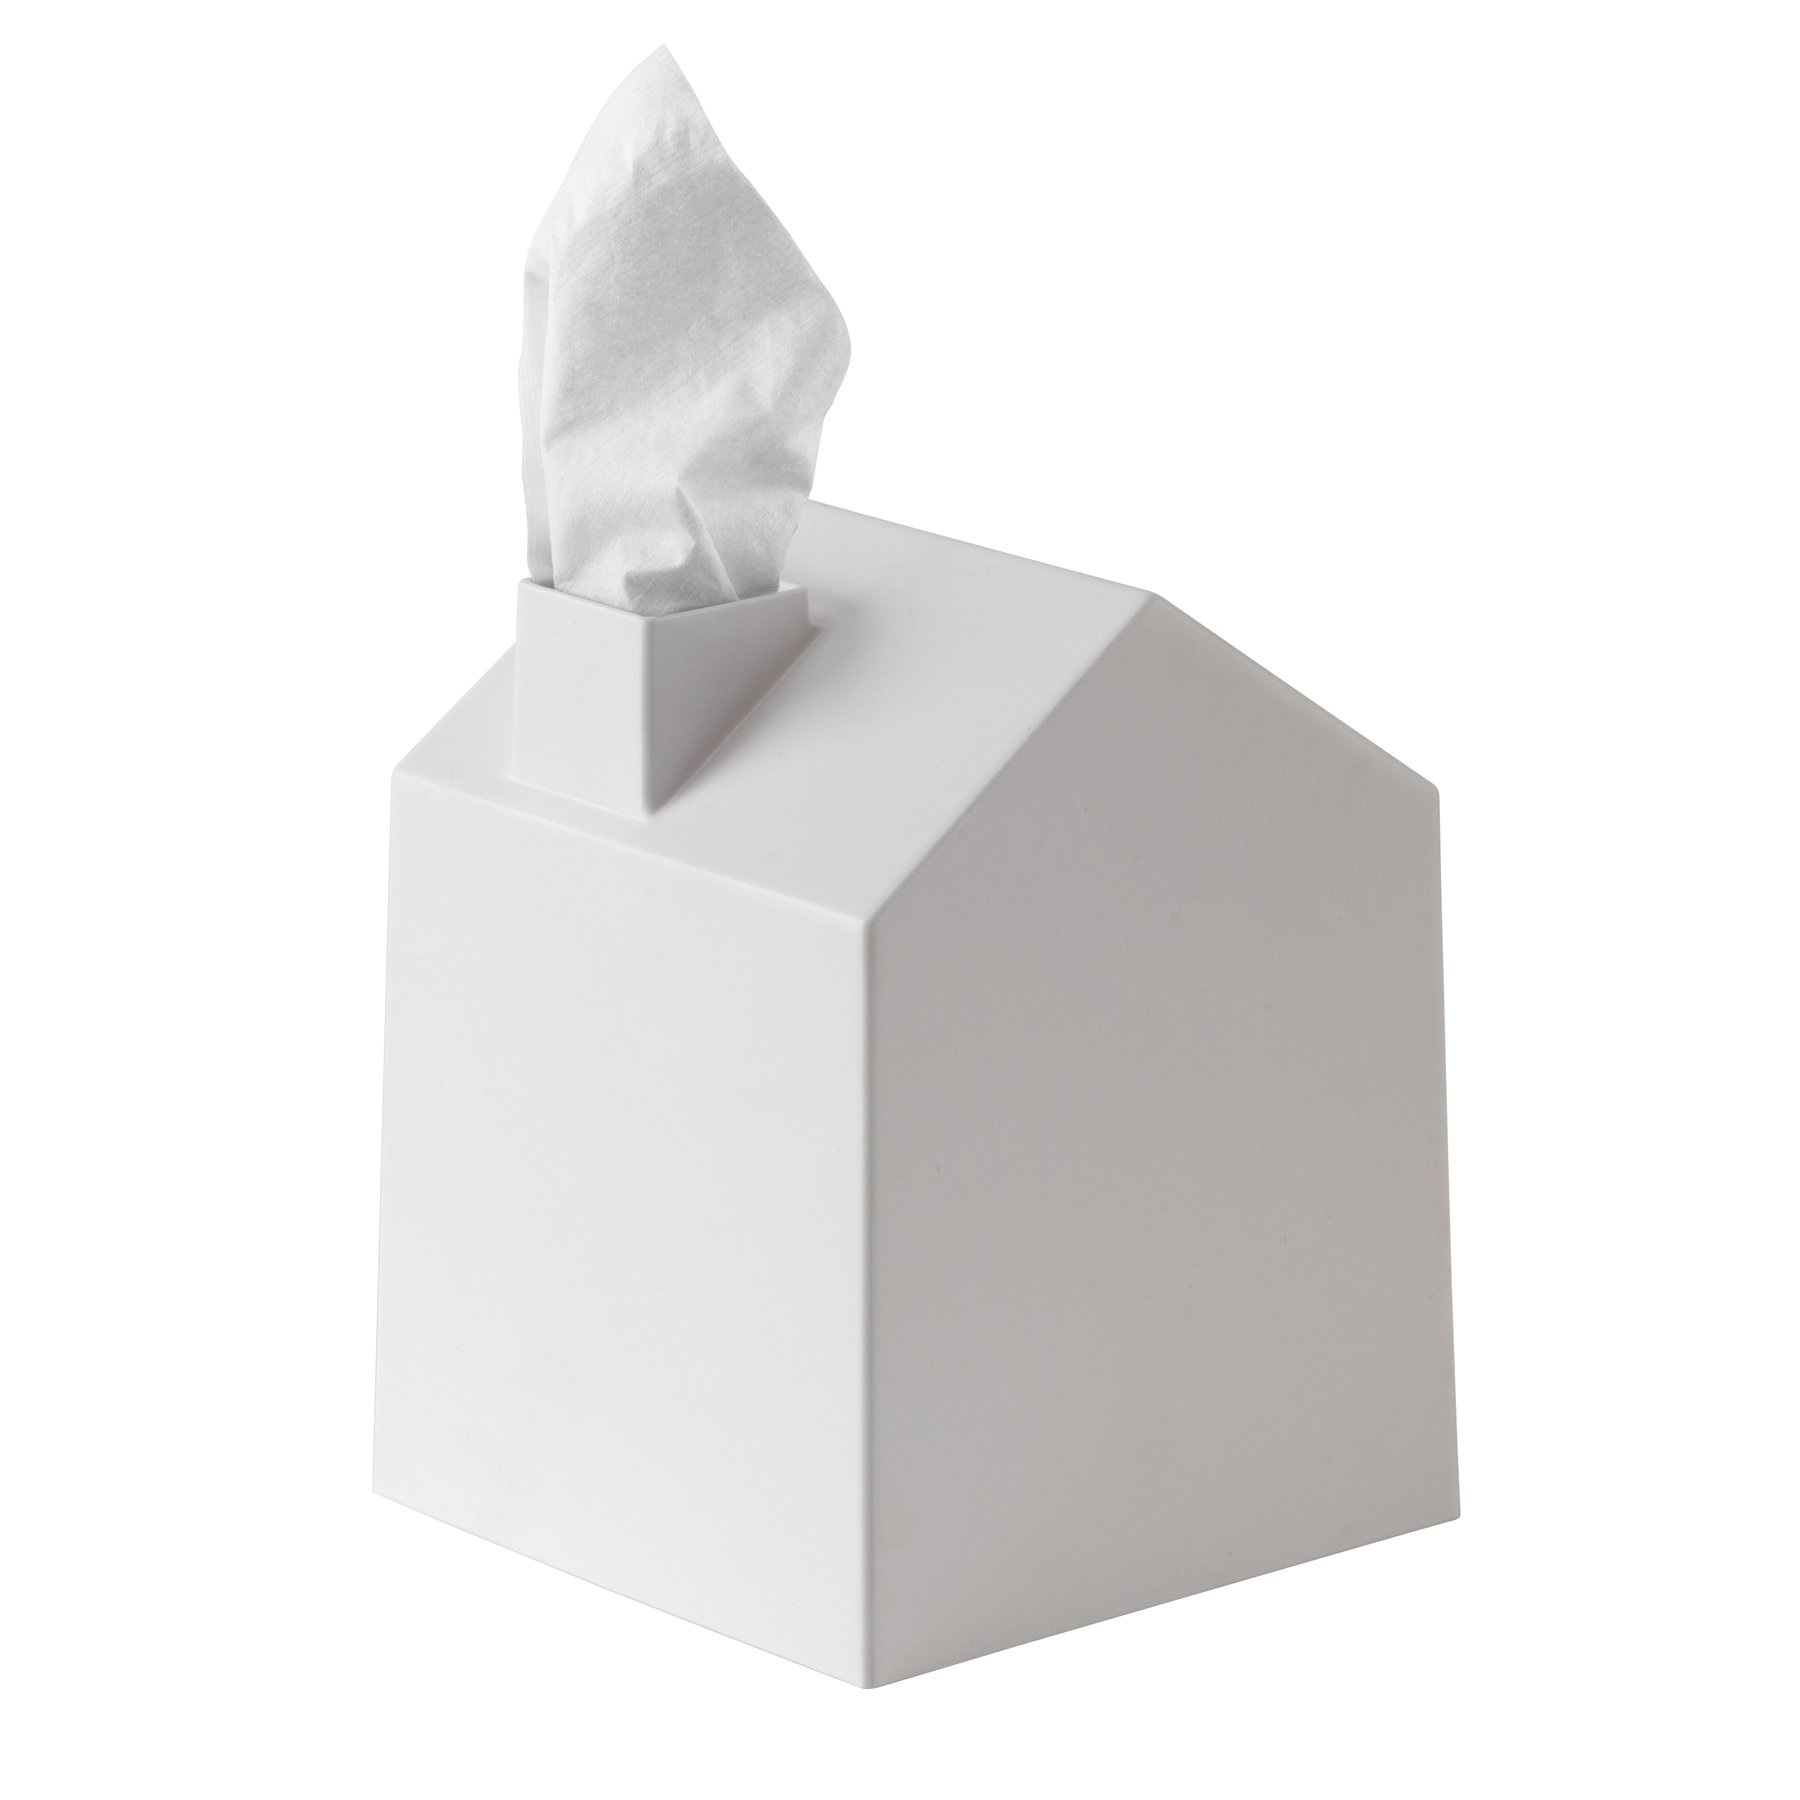 Umbra Casa Tissue Box Cover, White by Umbra